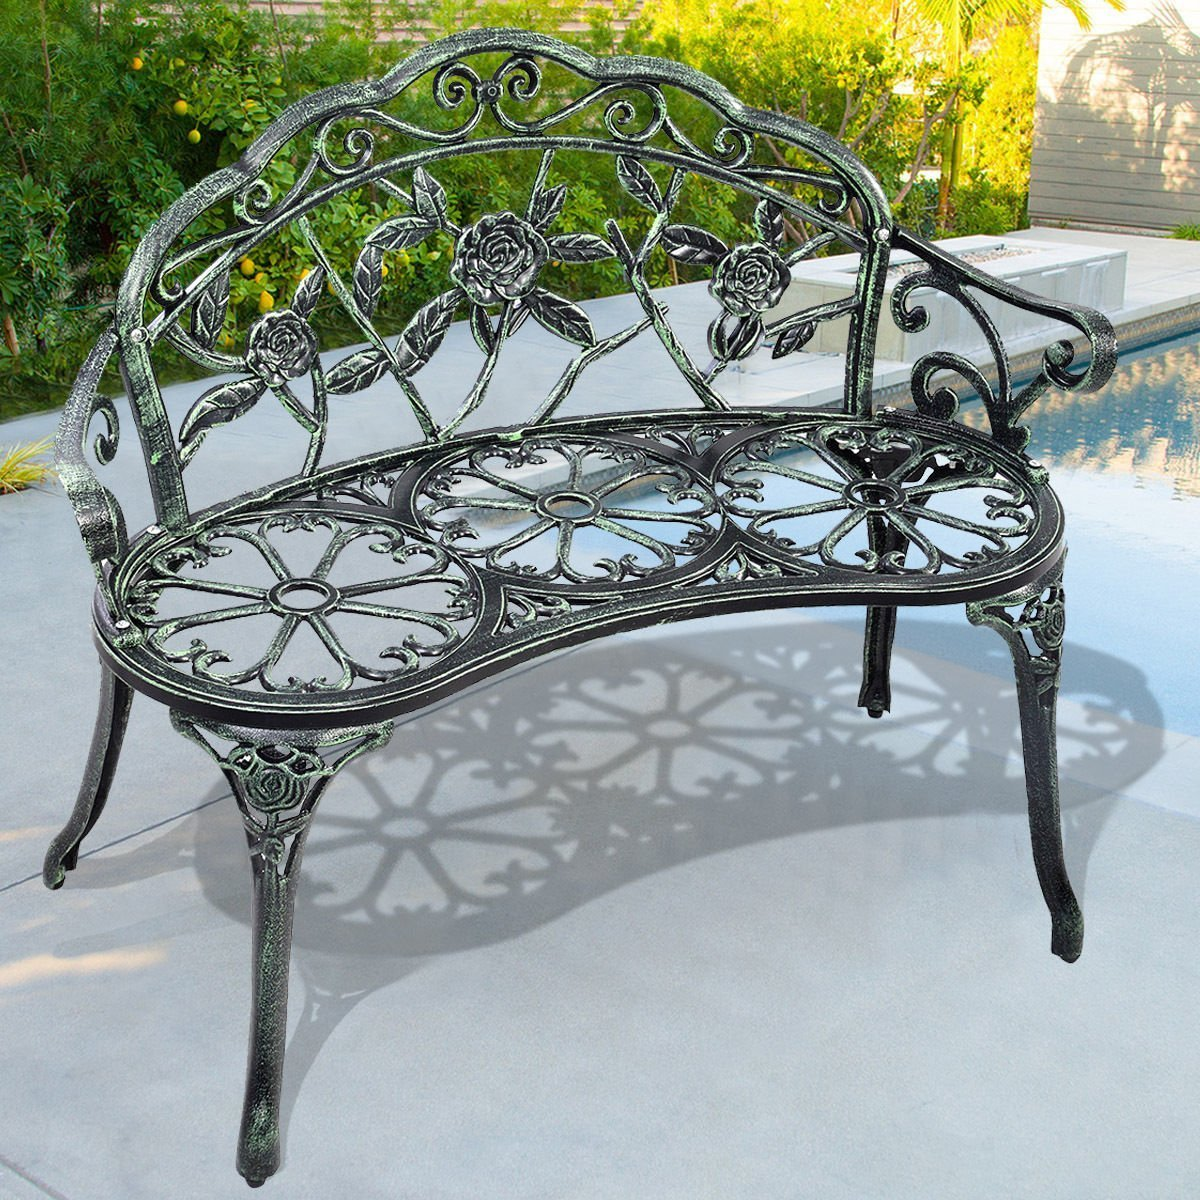 Giantex Patio Garden Bench Chair Style Porch Cast Aluminum Outdoor Rose Antique Green 5